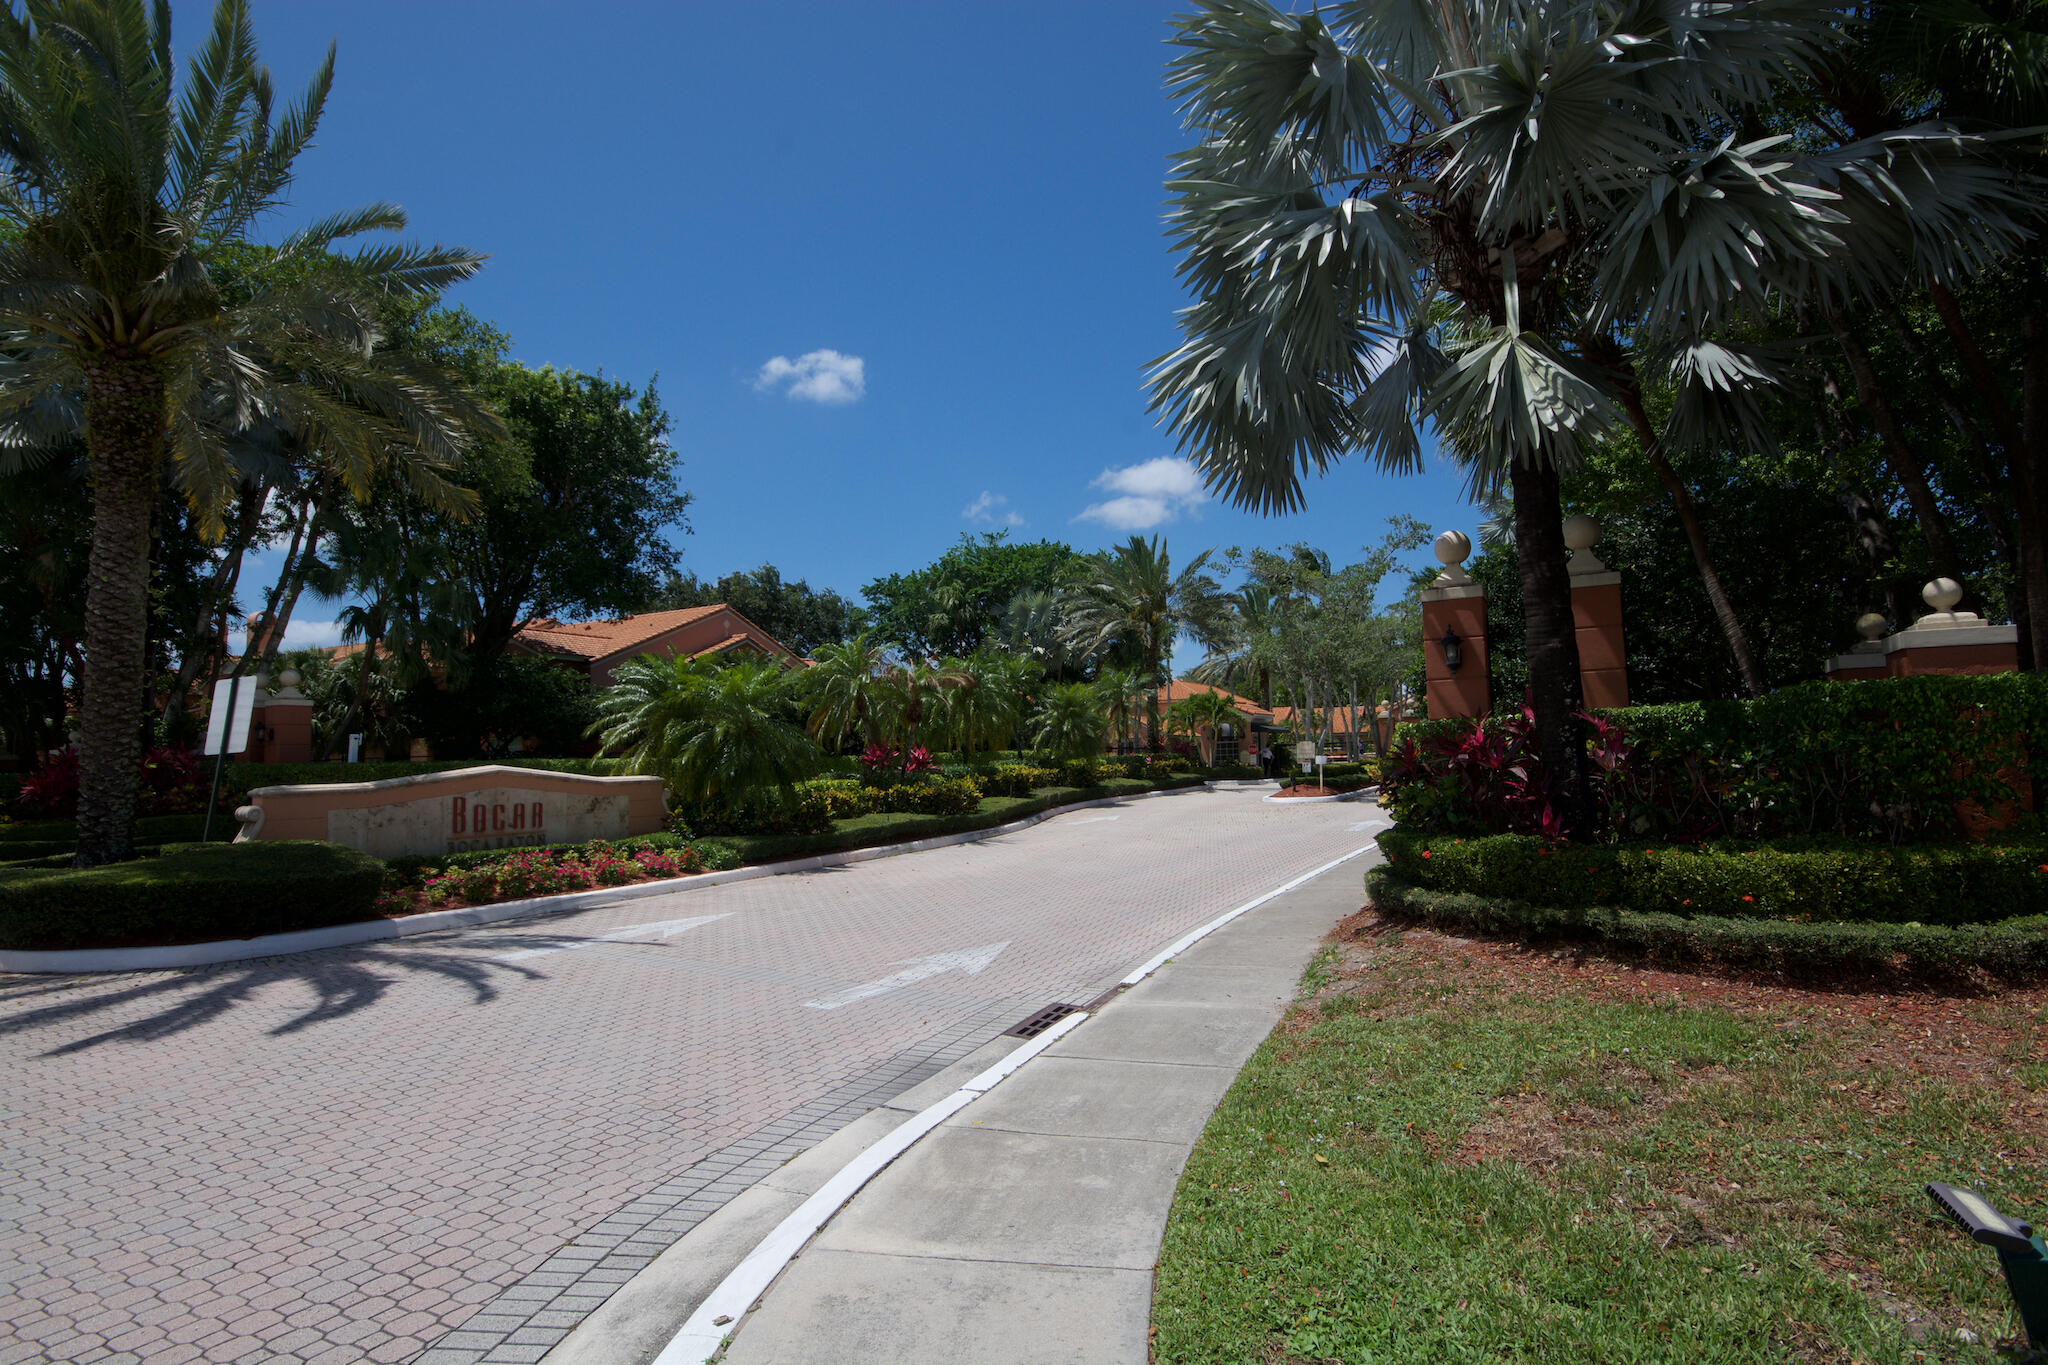 3239  Clint Moore Road 107 For Sale 10717952, FL